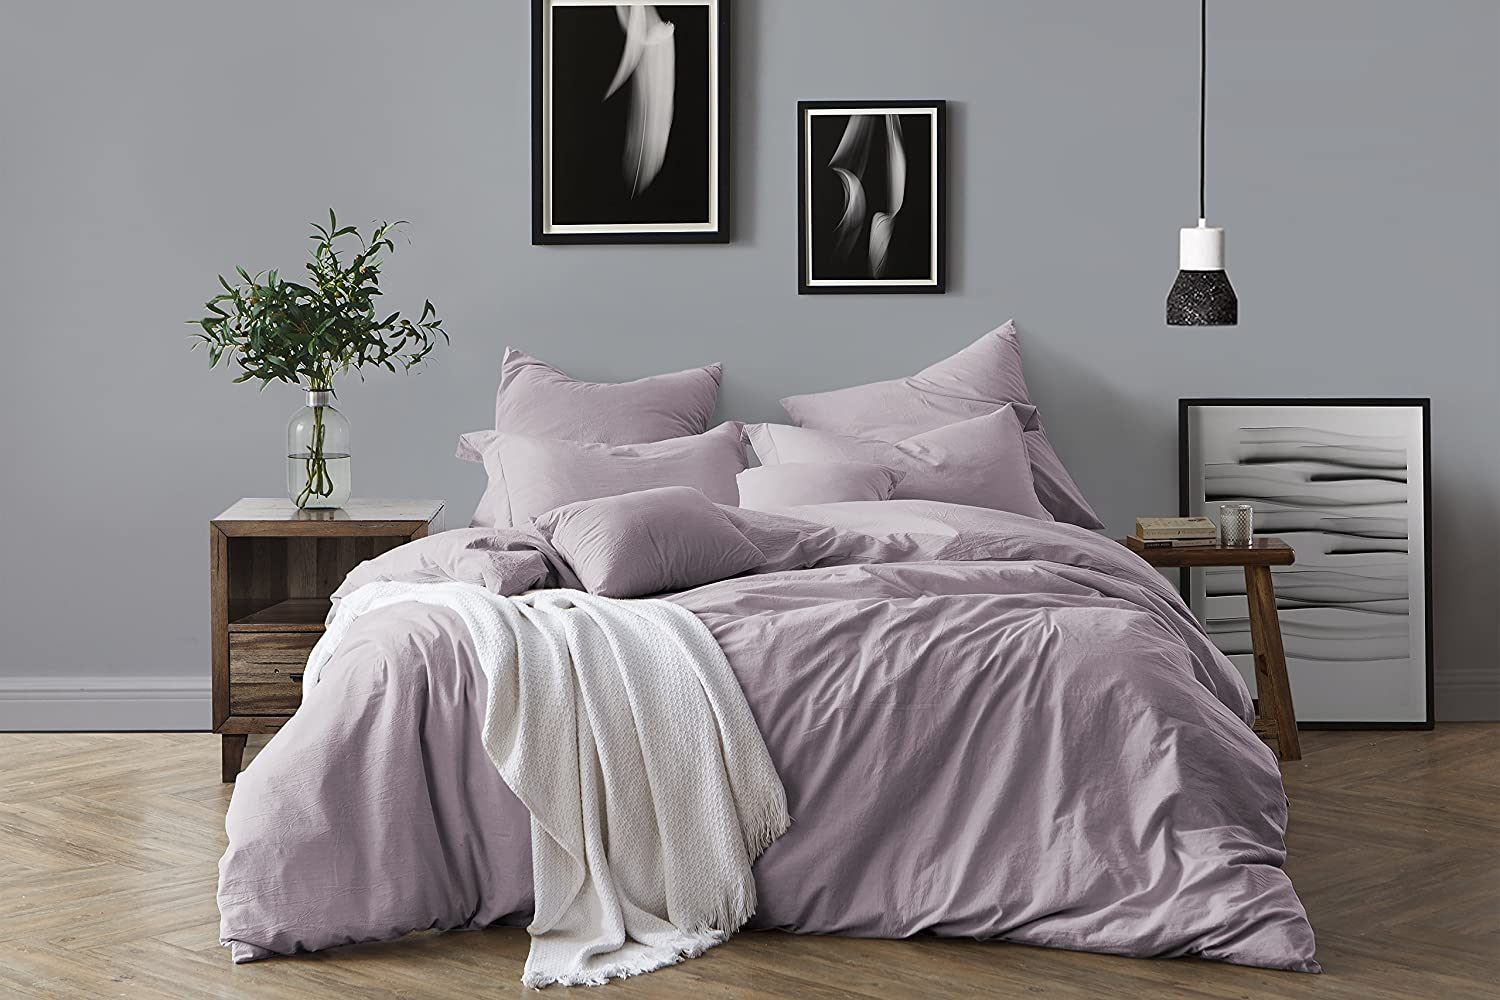 Swift Home 100% Cotton Washed Yarn Dyed Dusty Lavender Duvet Cover & Sham Bedding Set, Ultra-Soft Luxury & Natural Wrinkled Look – King/California King